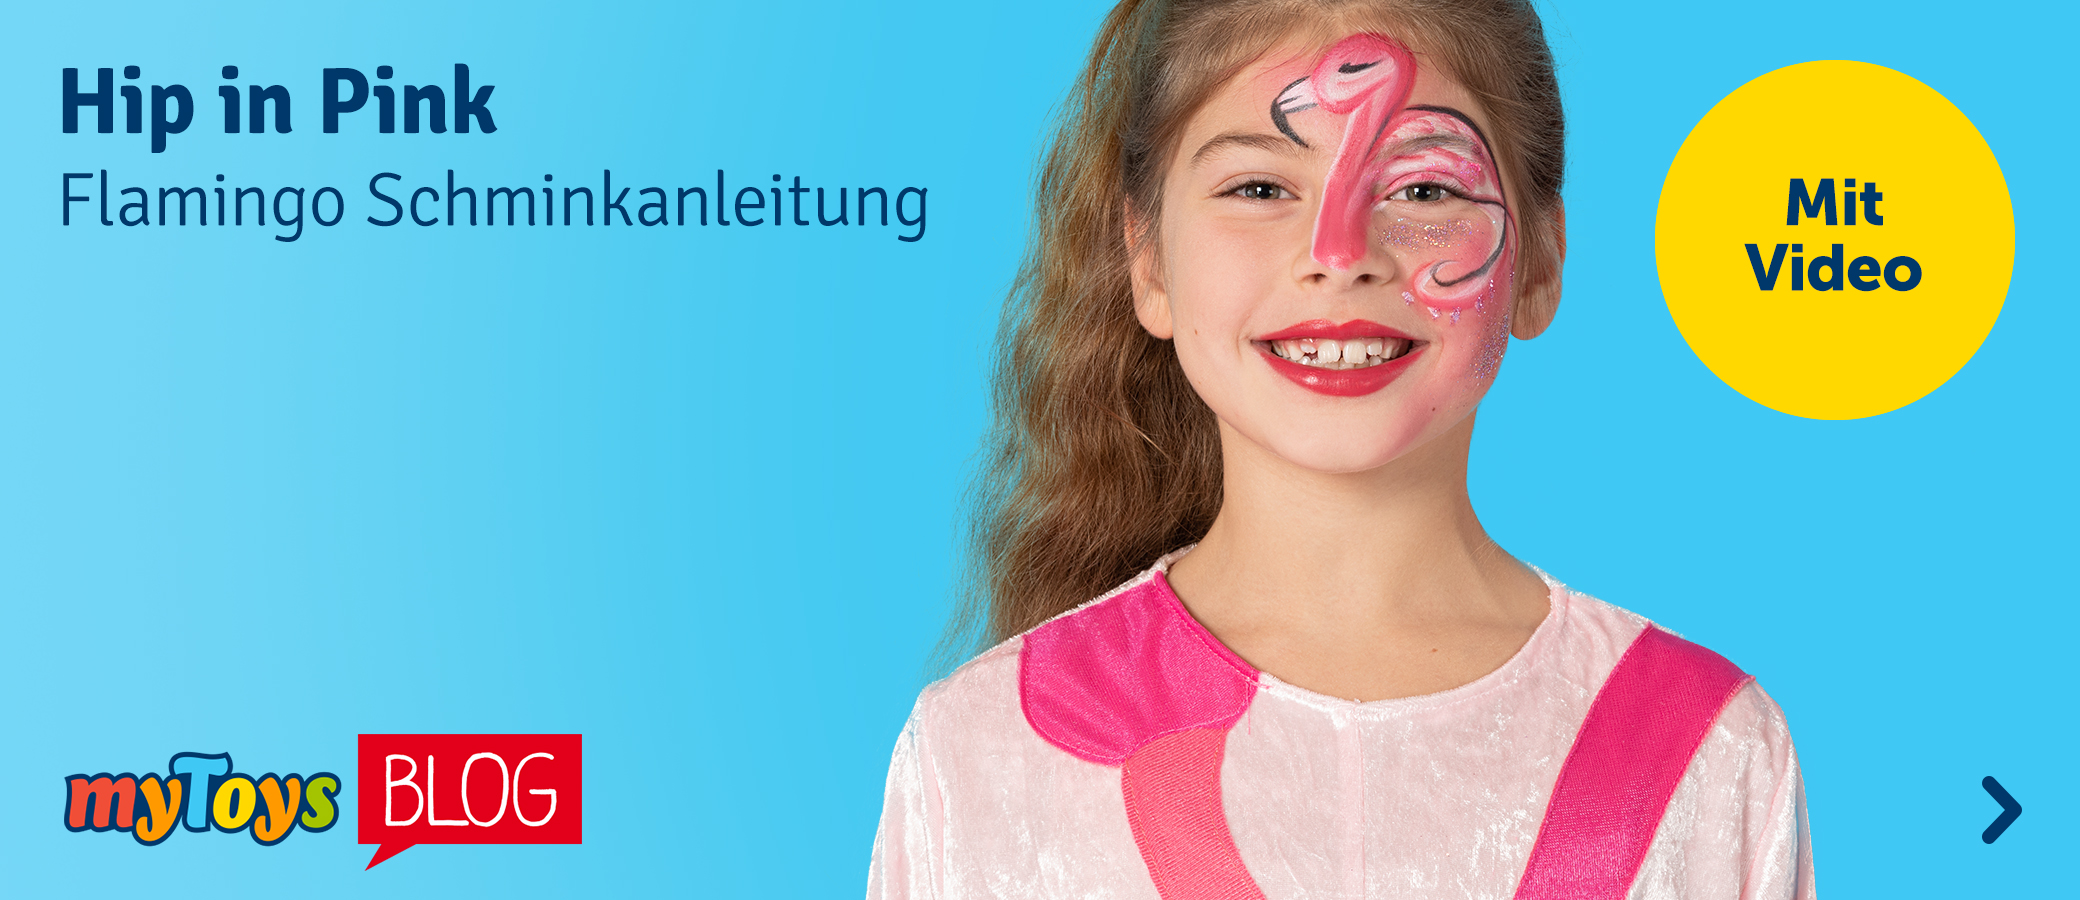 Flamingo schminken: Schminkanleitung mit Video